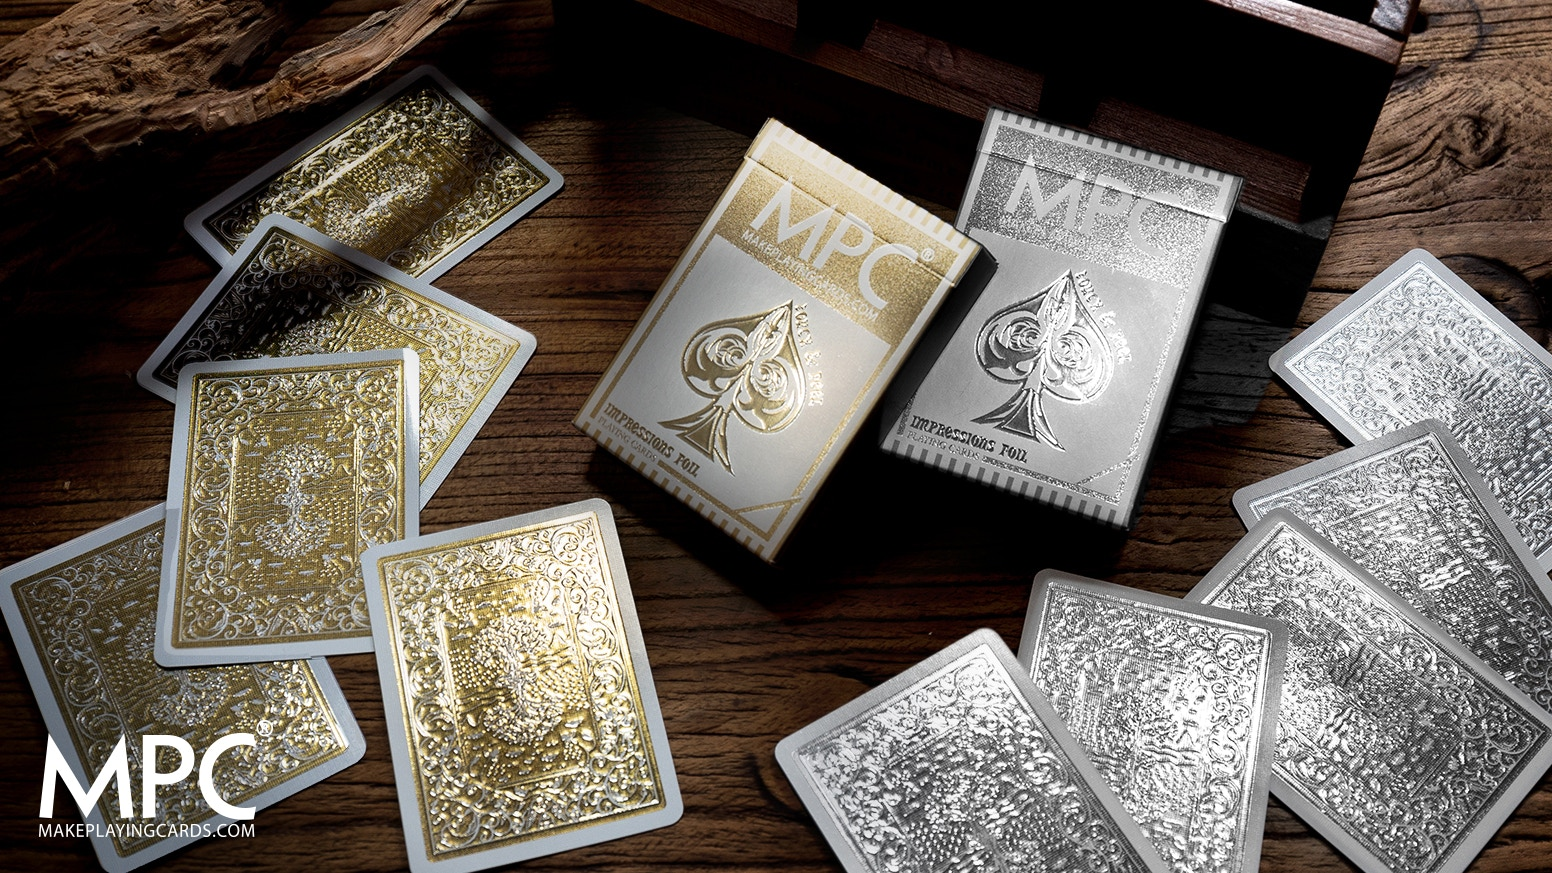 High gloss embossed metallic back playing cards using ground breaking print technology. Great for Poker, Cardistry & Magic.